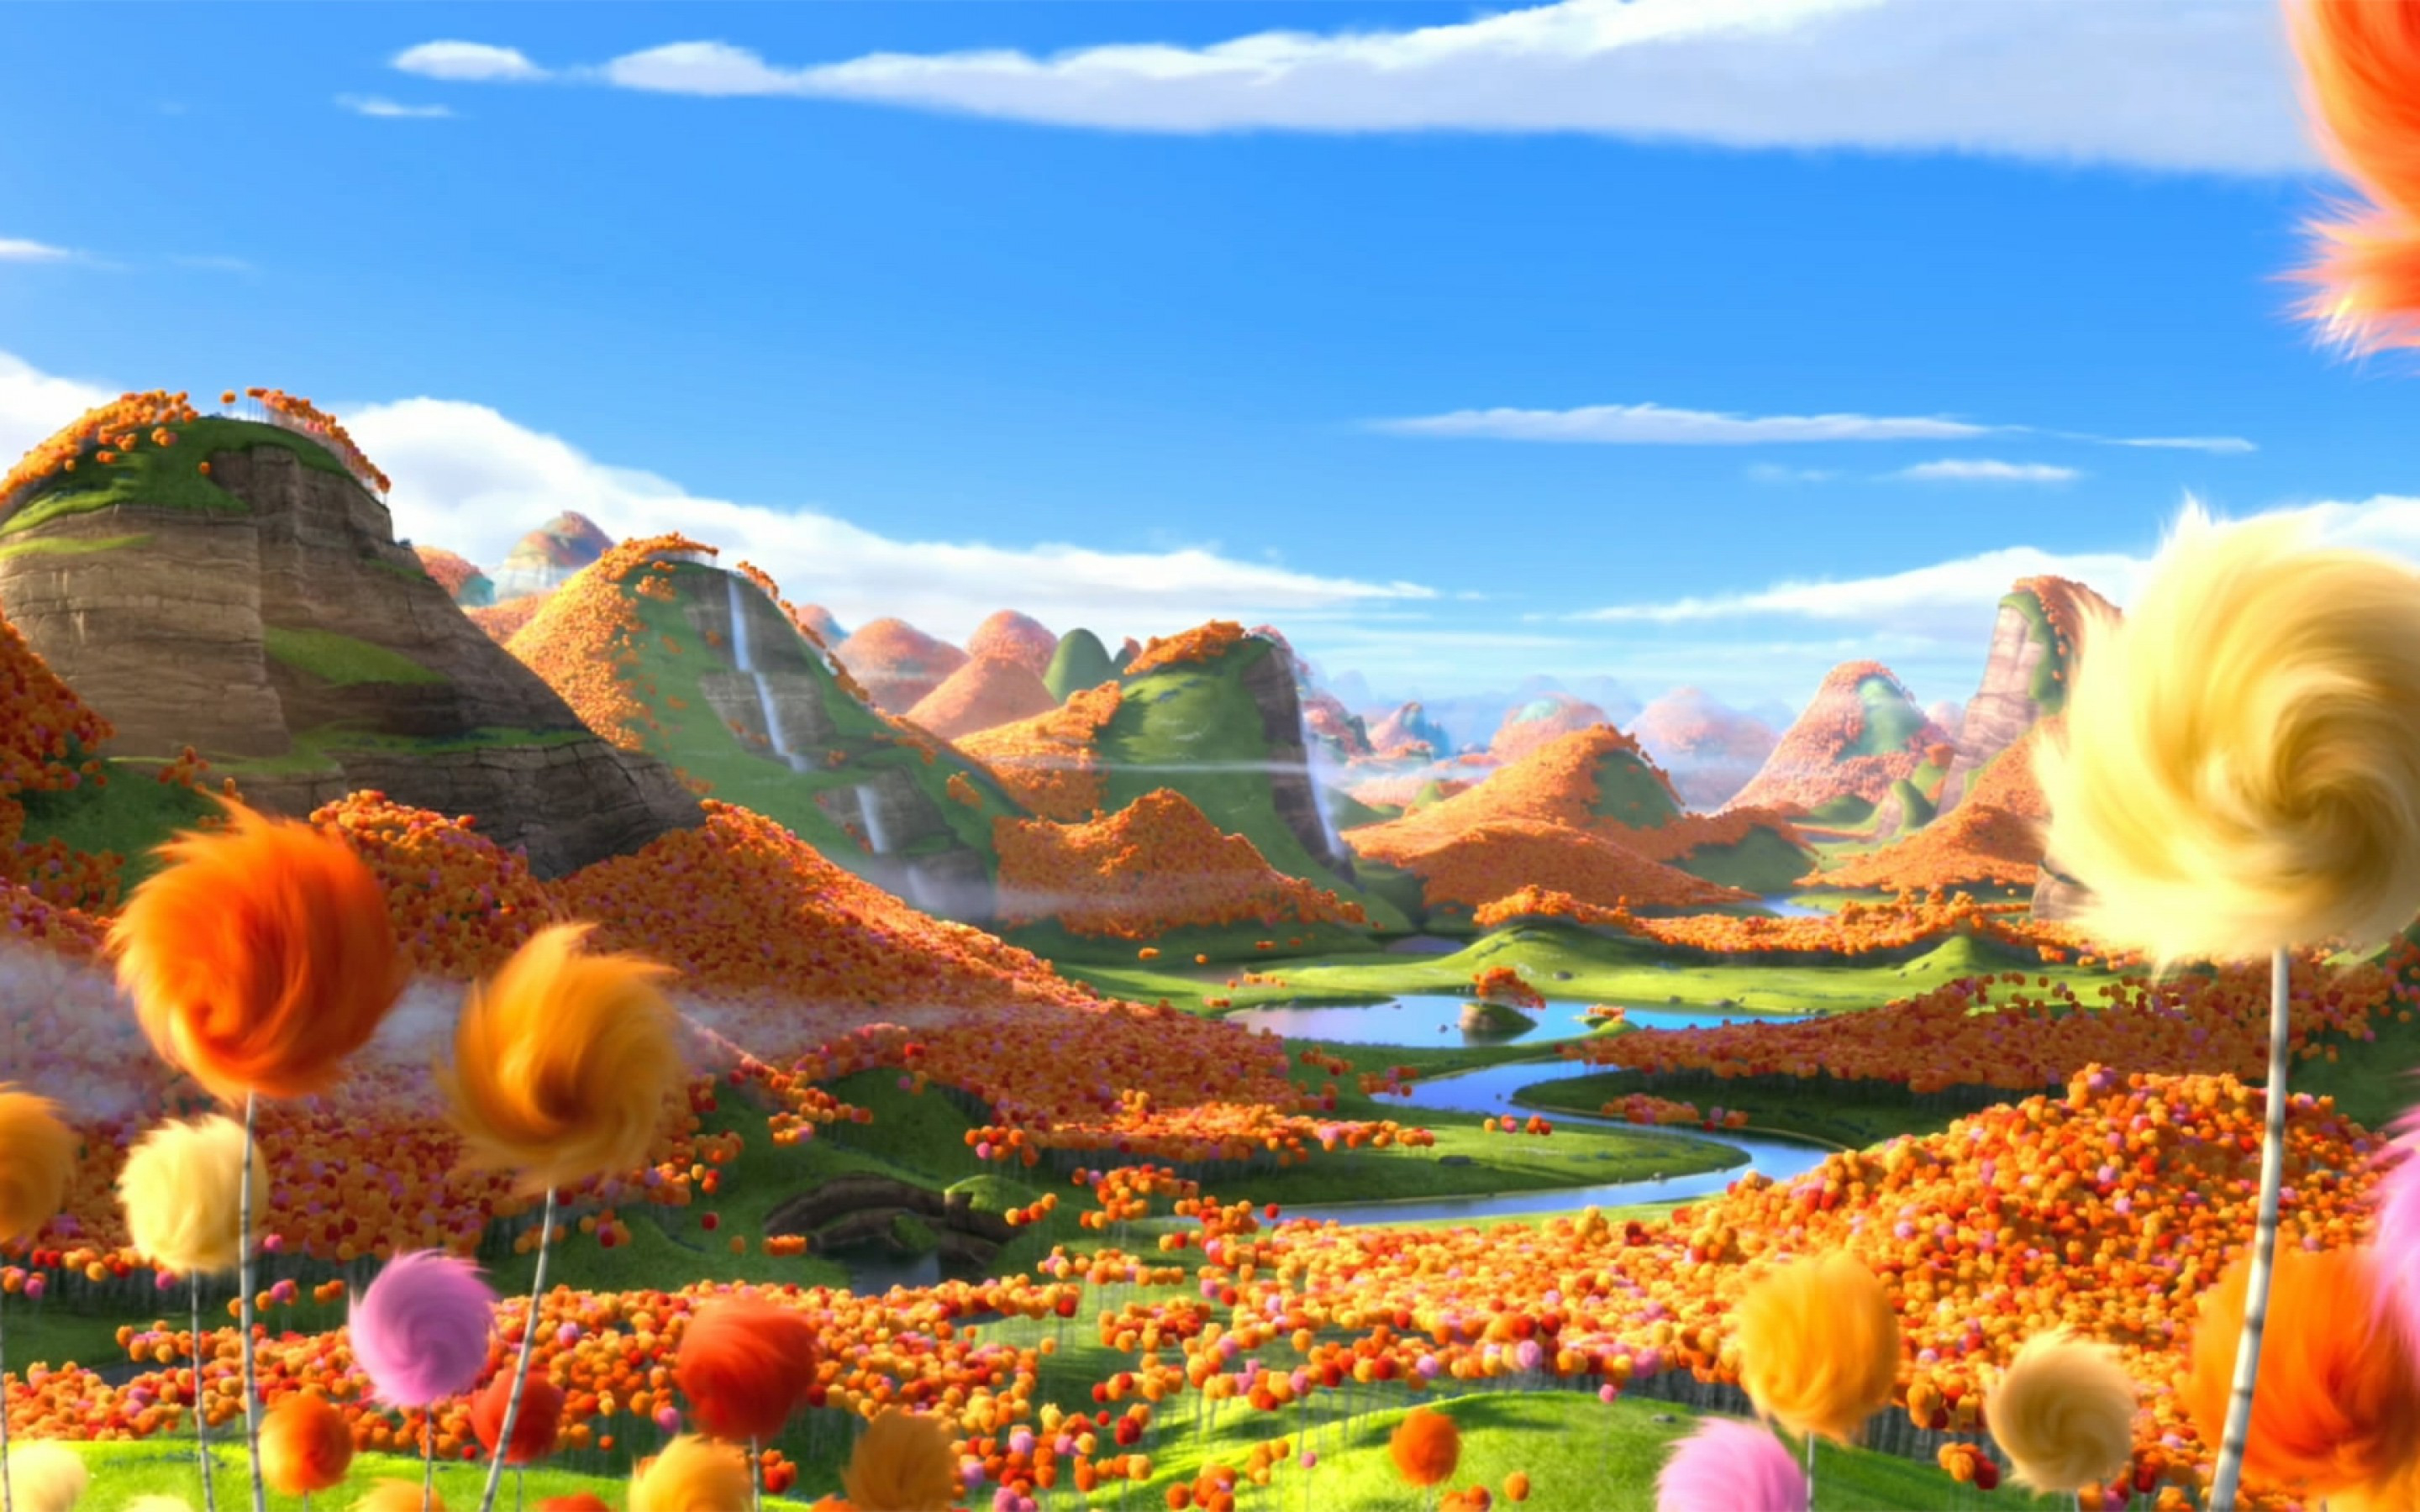 The Lorax Animated Amazing Hd Wallpapers All Hd Wallpapers